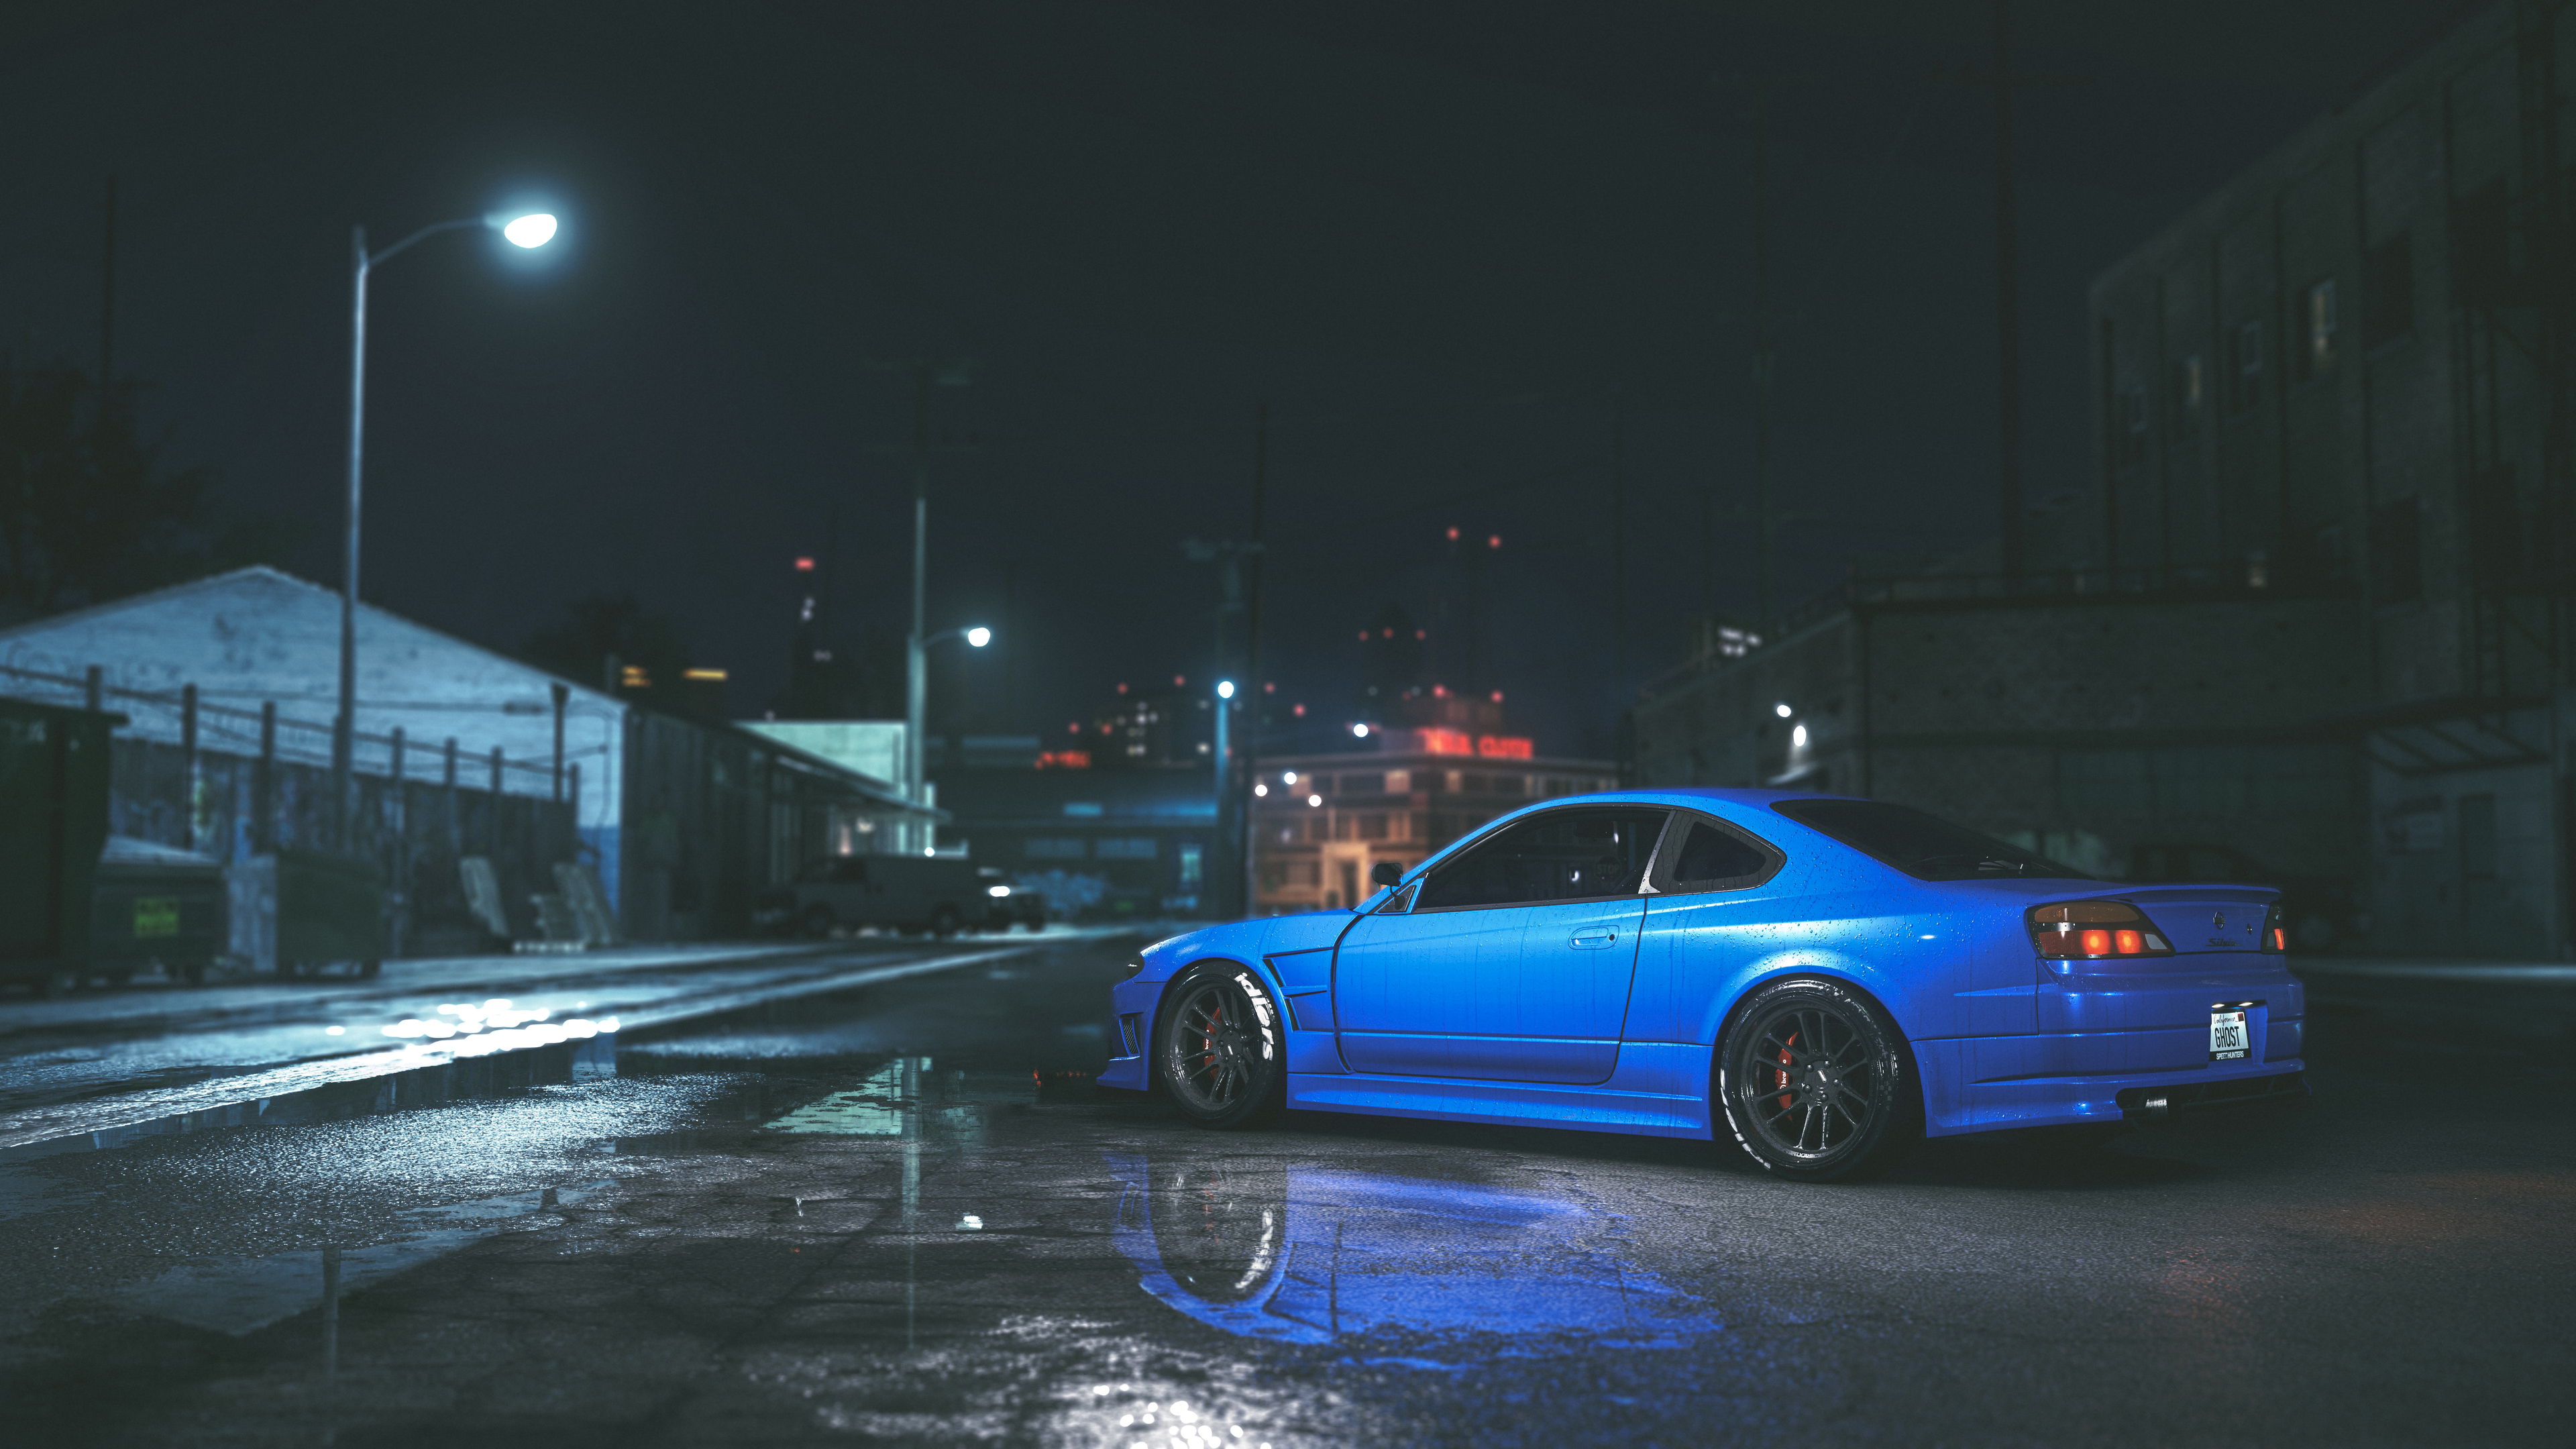 Wallpaper 4k Need For Speed Game 4k 4k Wallpapers Cars